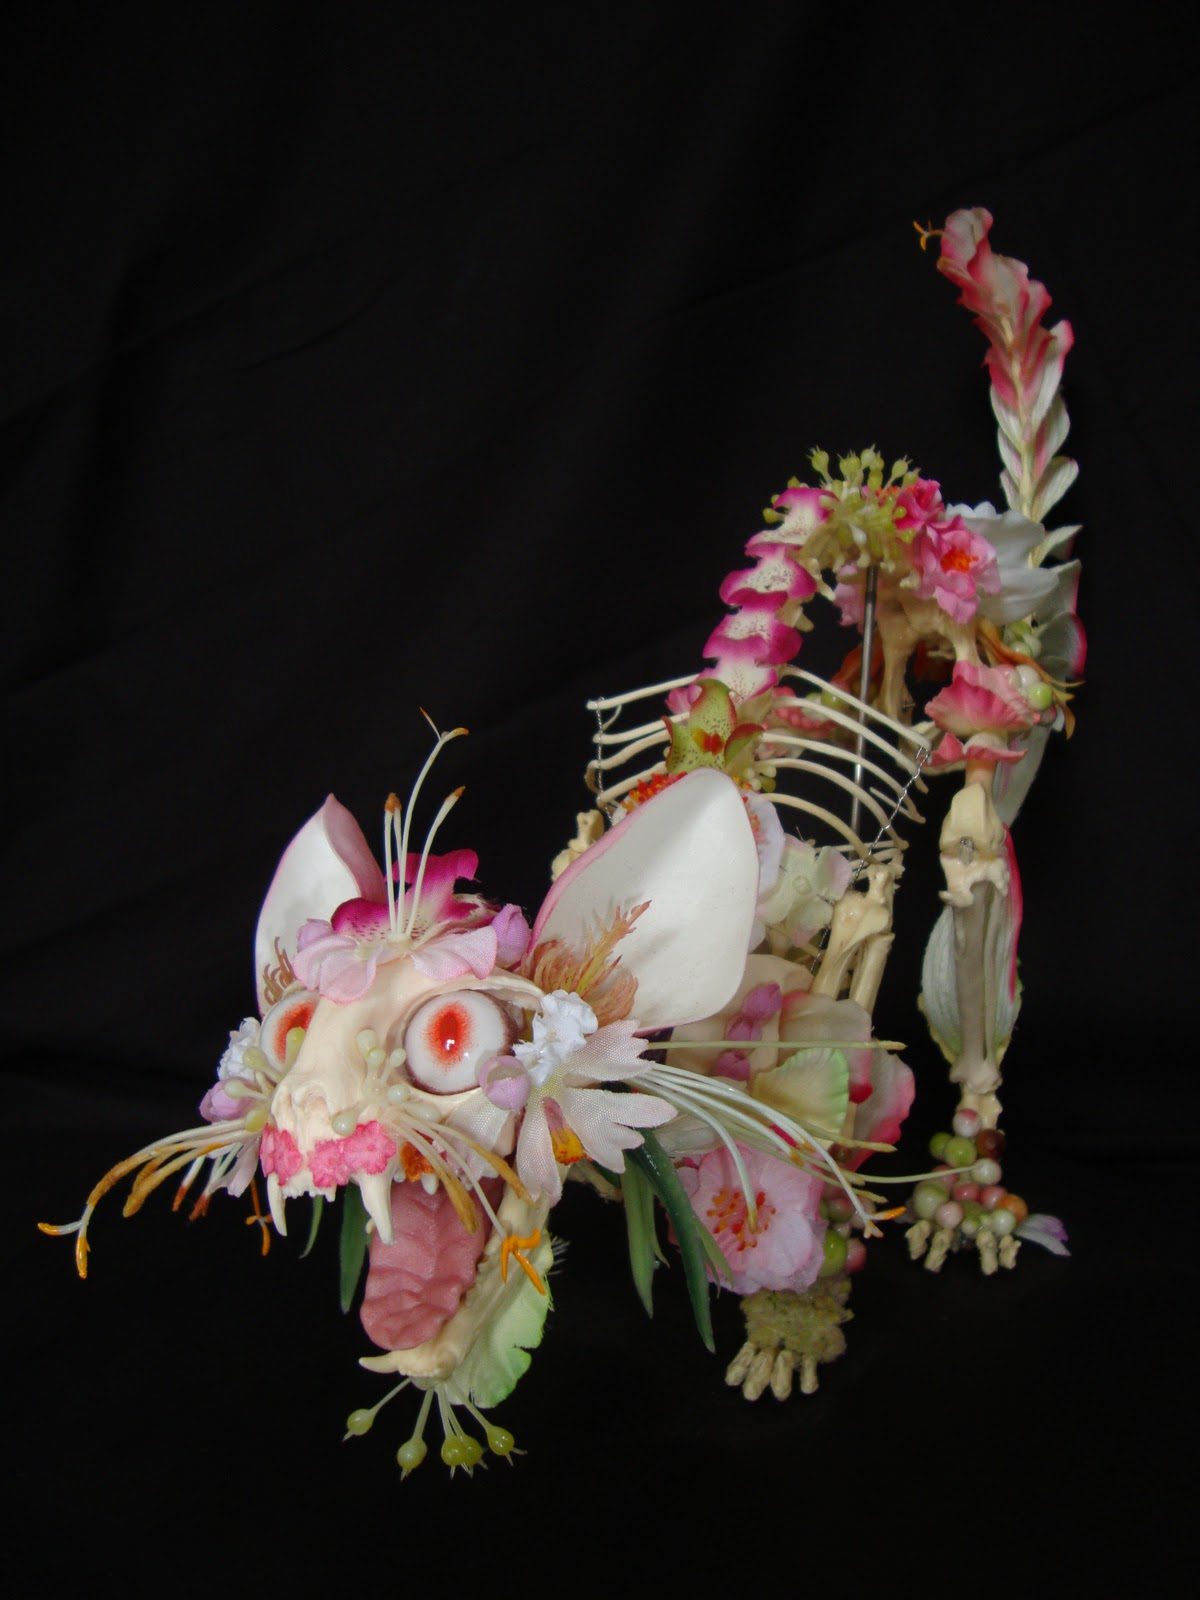 Cedric Laquieze flower skeleton sculptures